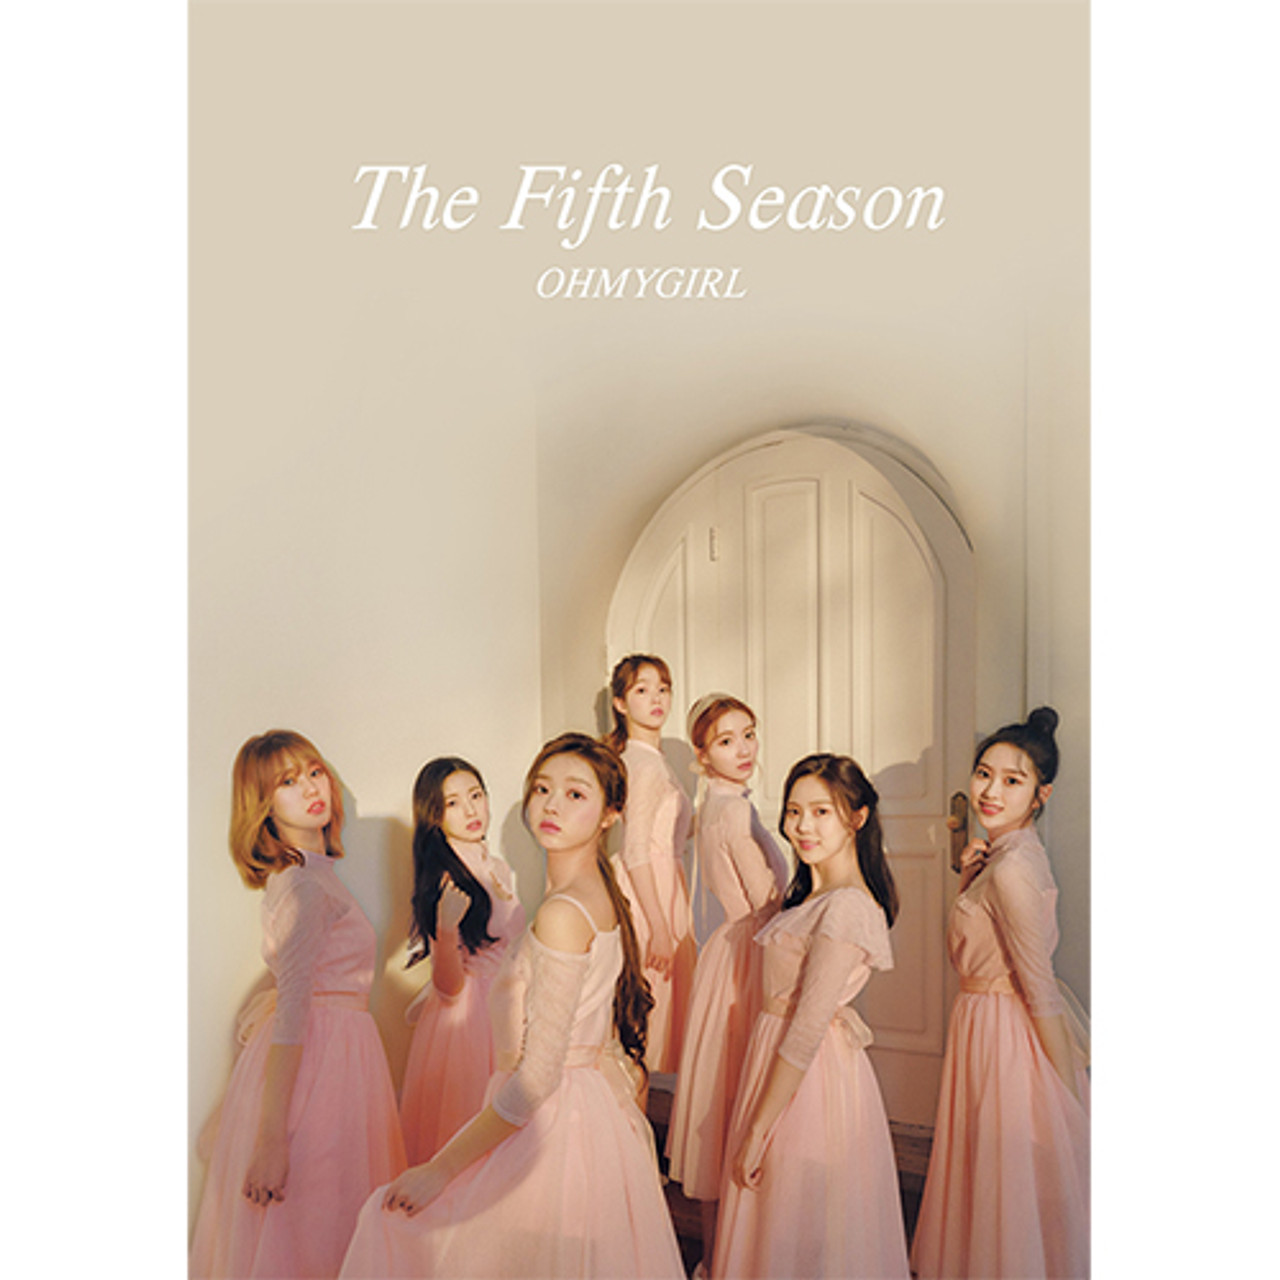 OH MY GIRL - 1st Album  [THE FIFTH SEASON]  PHOTOGRAPHY COVER VER + Poster